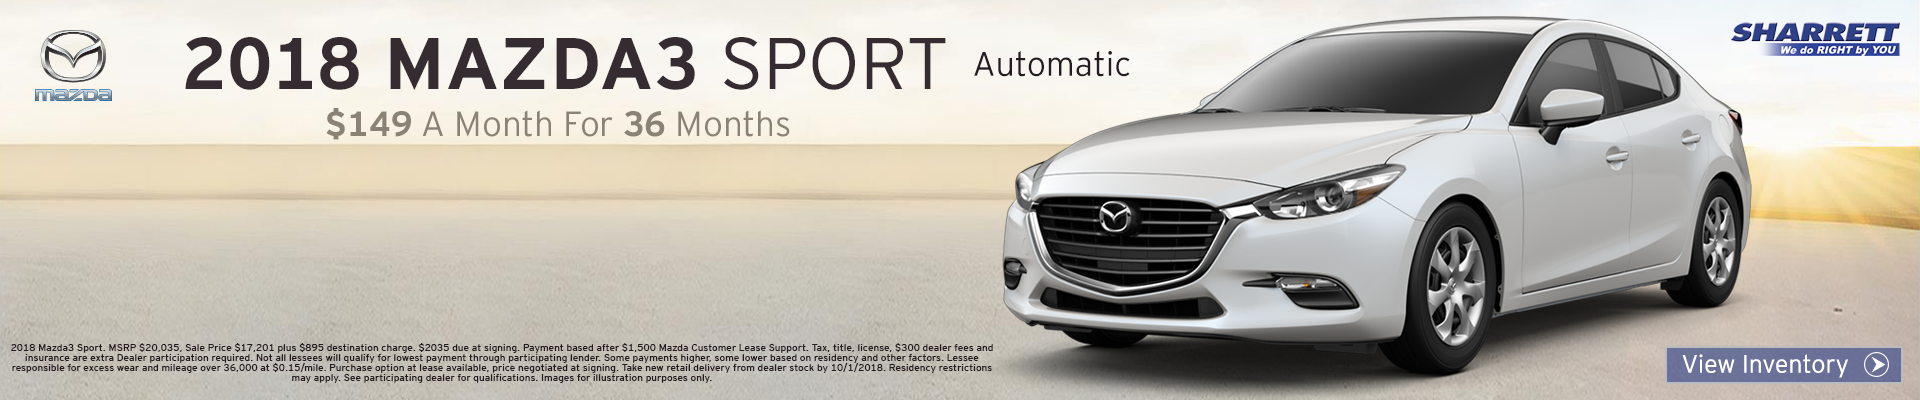 Lease a 2018 Mazda3 Sport for $149/mo for 36 months